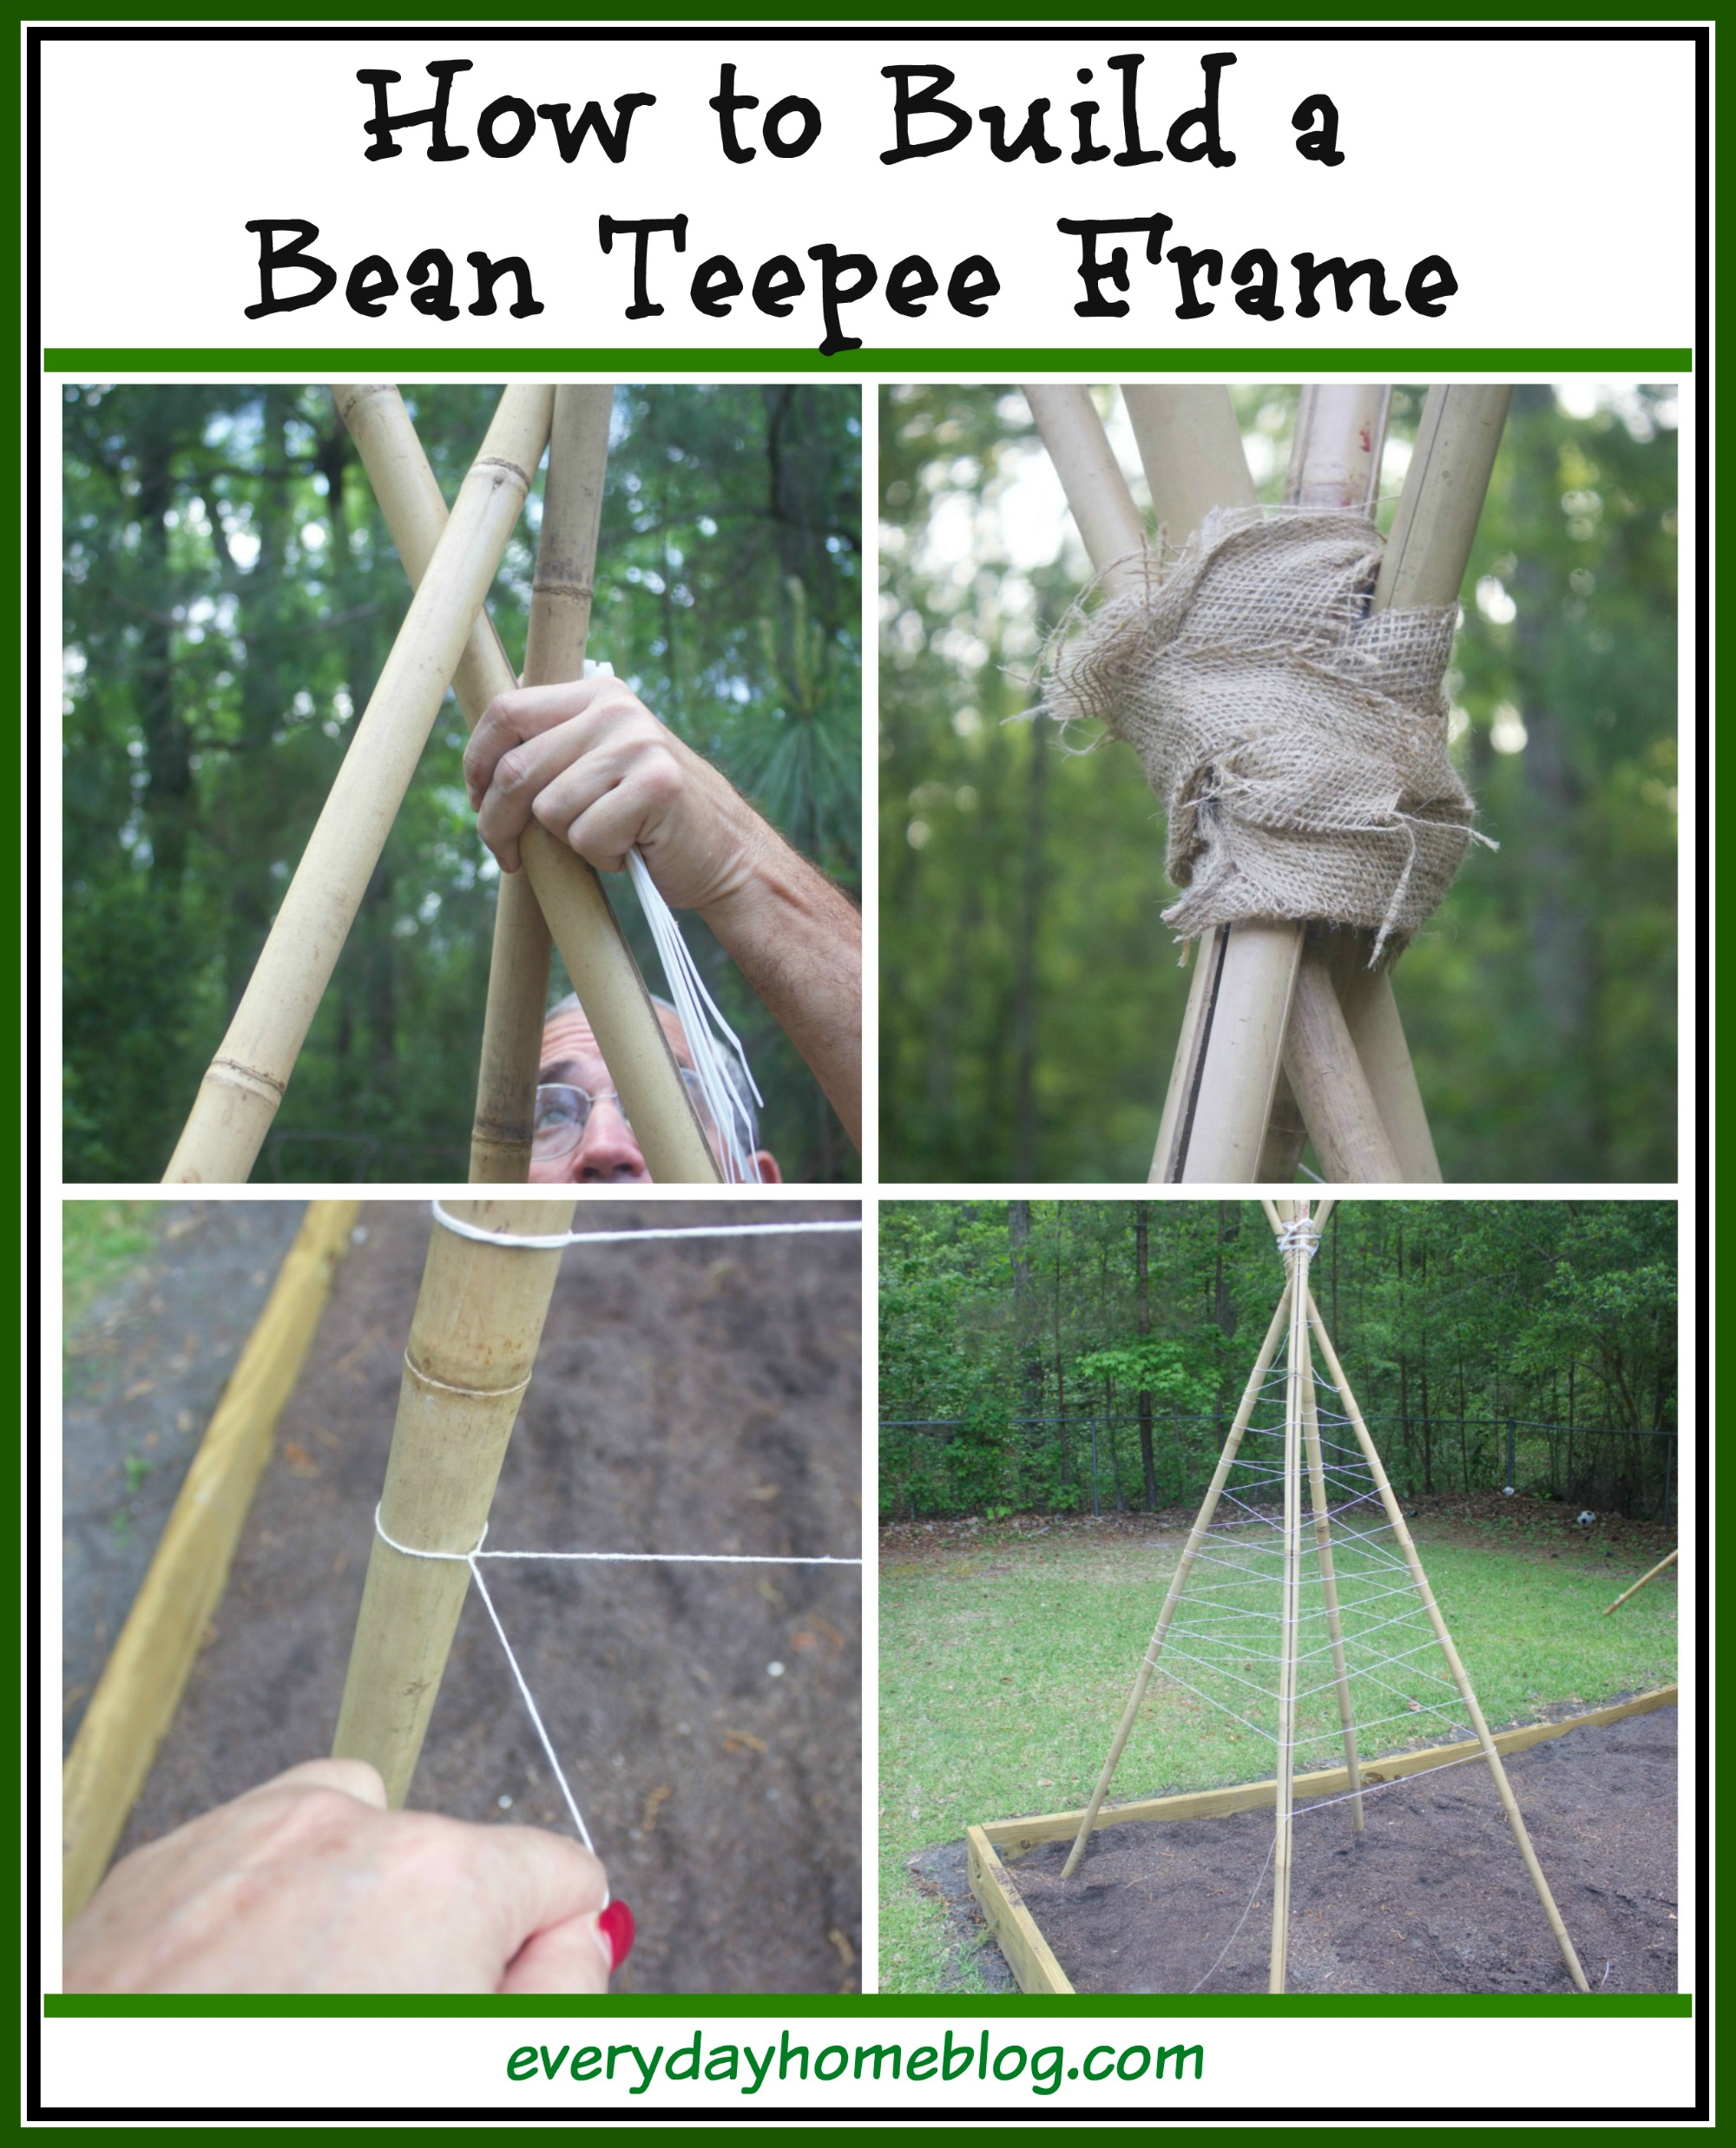 How to Build a Bean Teepee Frame | The Everyday Home Blog